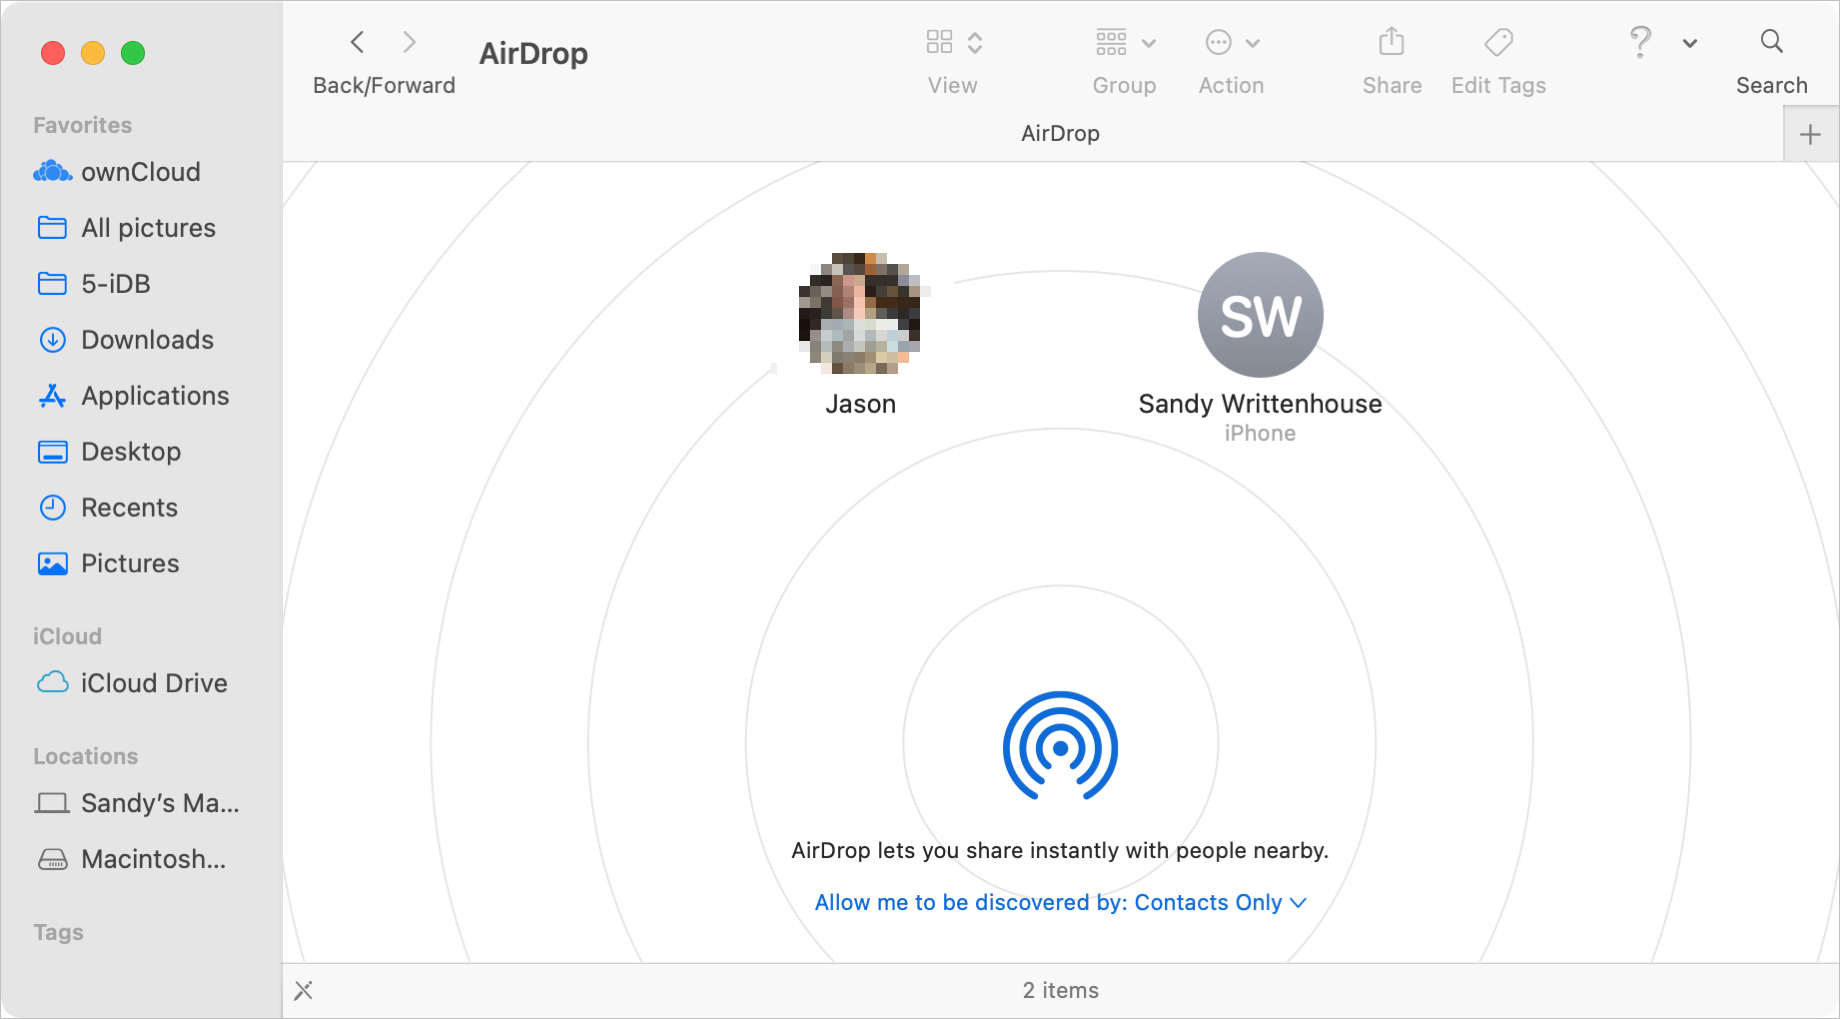 AirDrop Window on Mac to Share Files